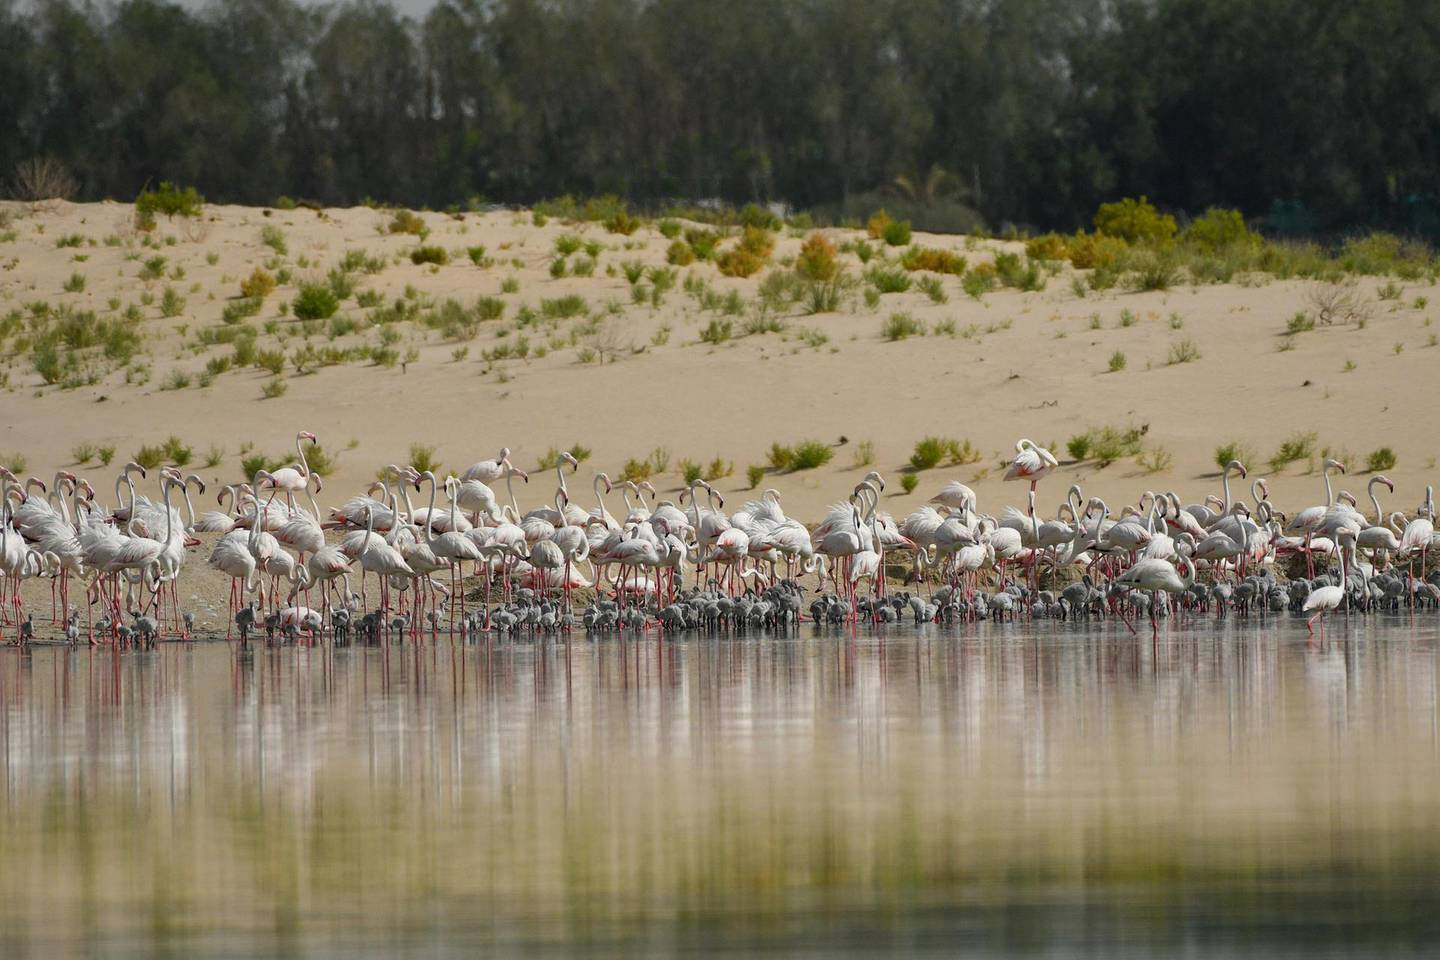 Flamingos are the flagship species of Al Wathba Reserve